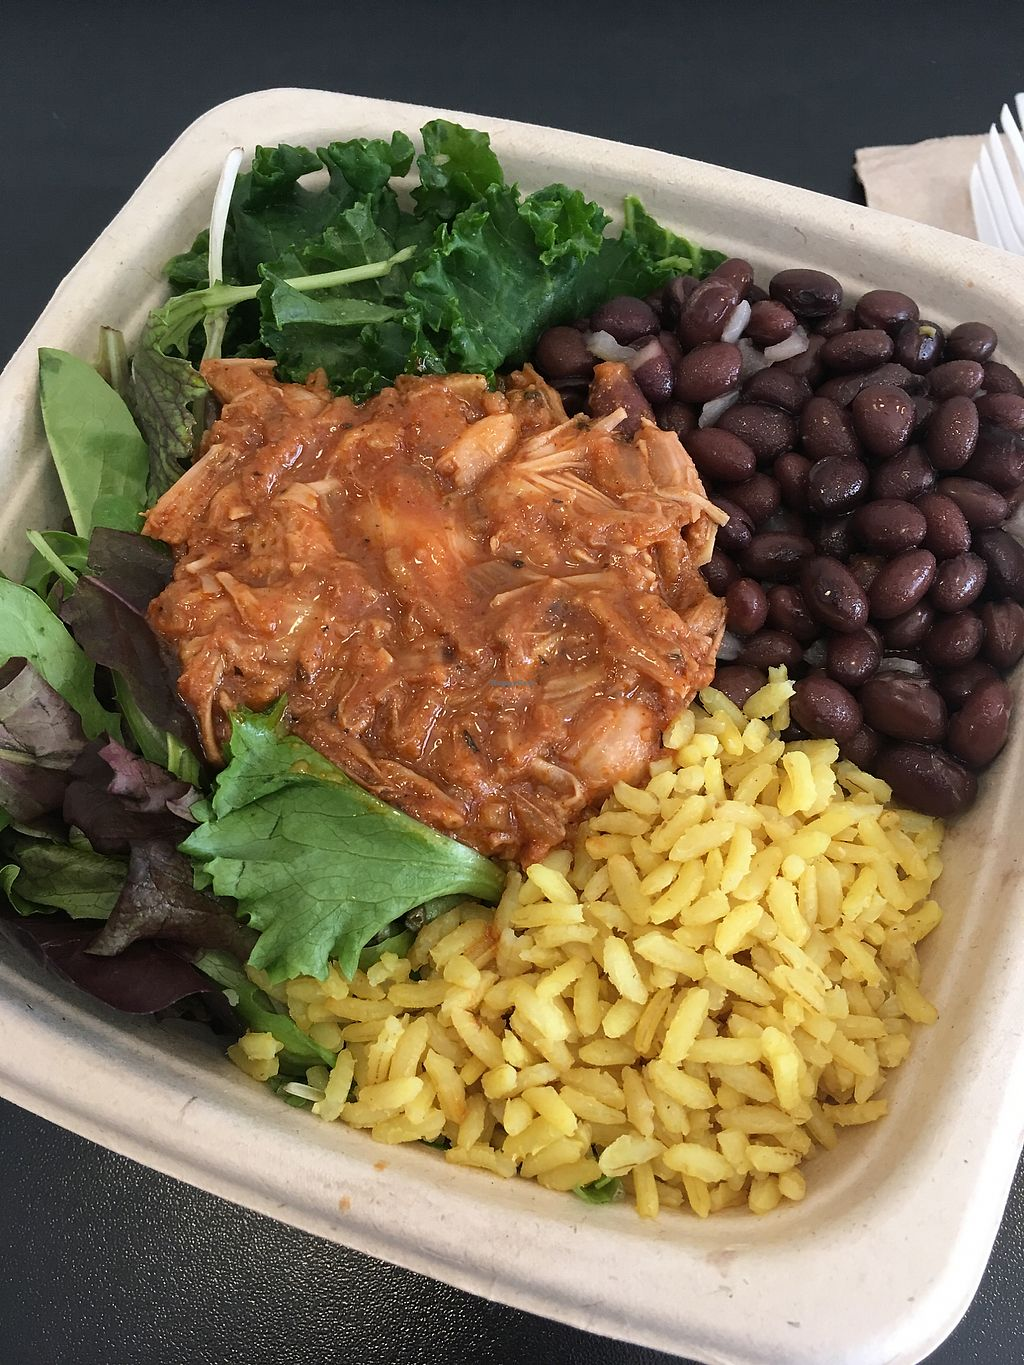 """Photo of Blossom Du Jour - Chelsea  by <a href=""""/members/profile/hokusai77"""">hokusai77</a> <br/>Bowl with greens, marinated kale, savoury rice, black beans and jackfruit <br/> January 30, 2018  - <a href='/contact/abuse/image/23767/352753'>Report</a>"""